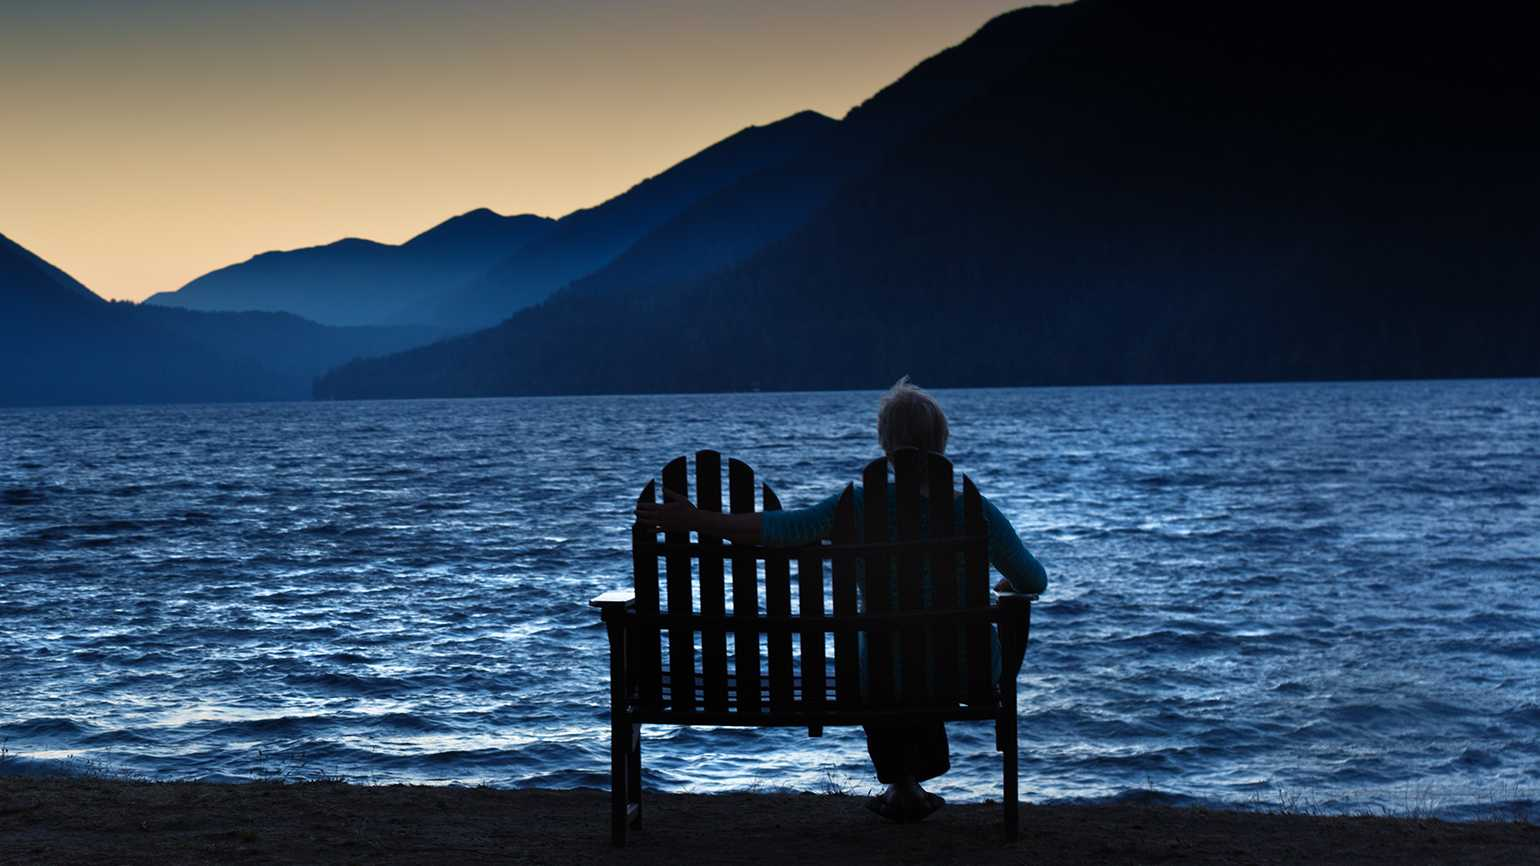 A mature woman watches the sun rise on a bench by a mountain lake